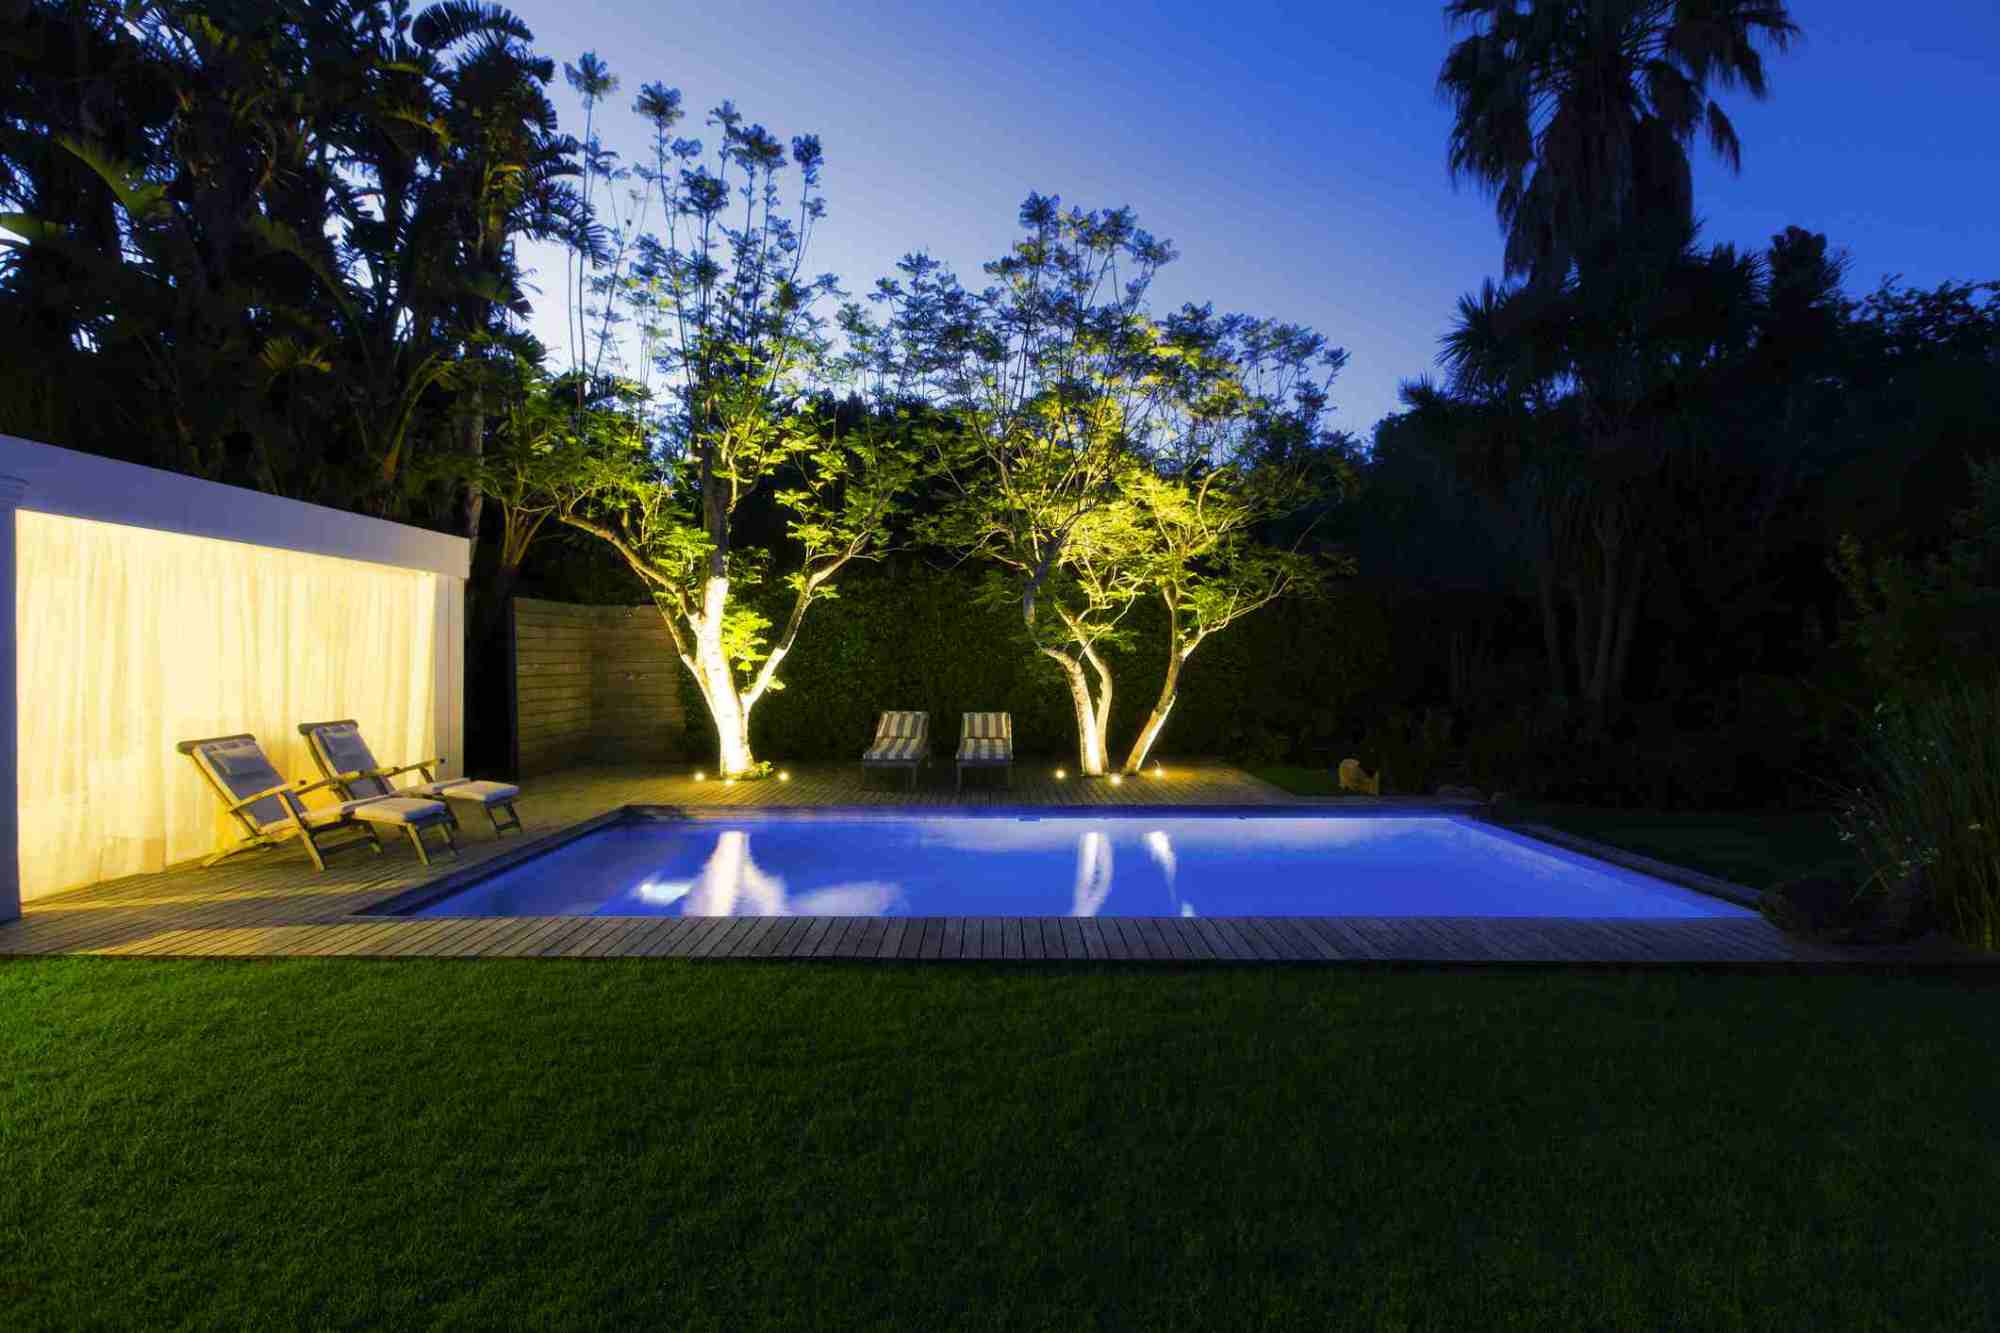 hight resolution of illuminated swimming pool and trees in backyard at dusk